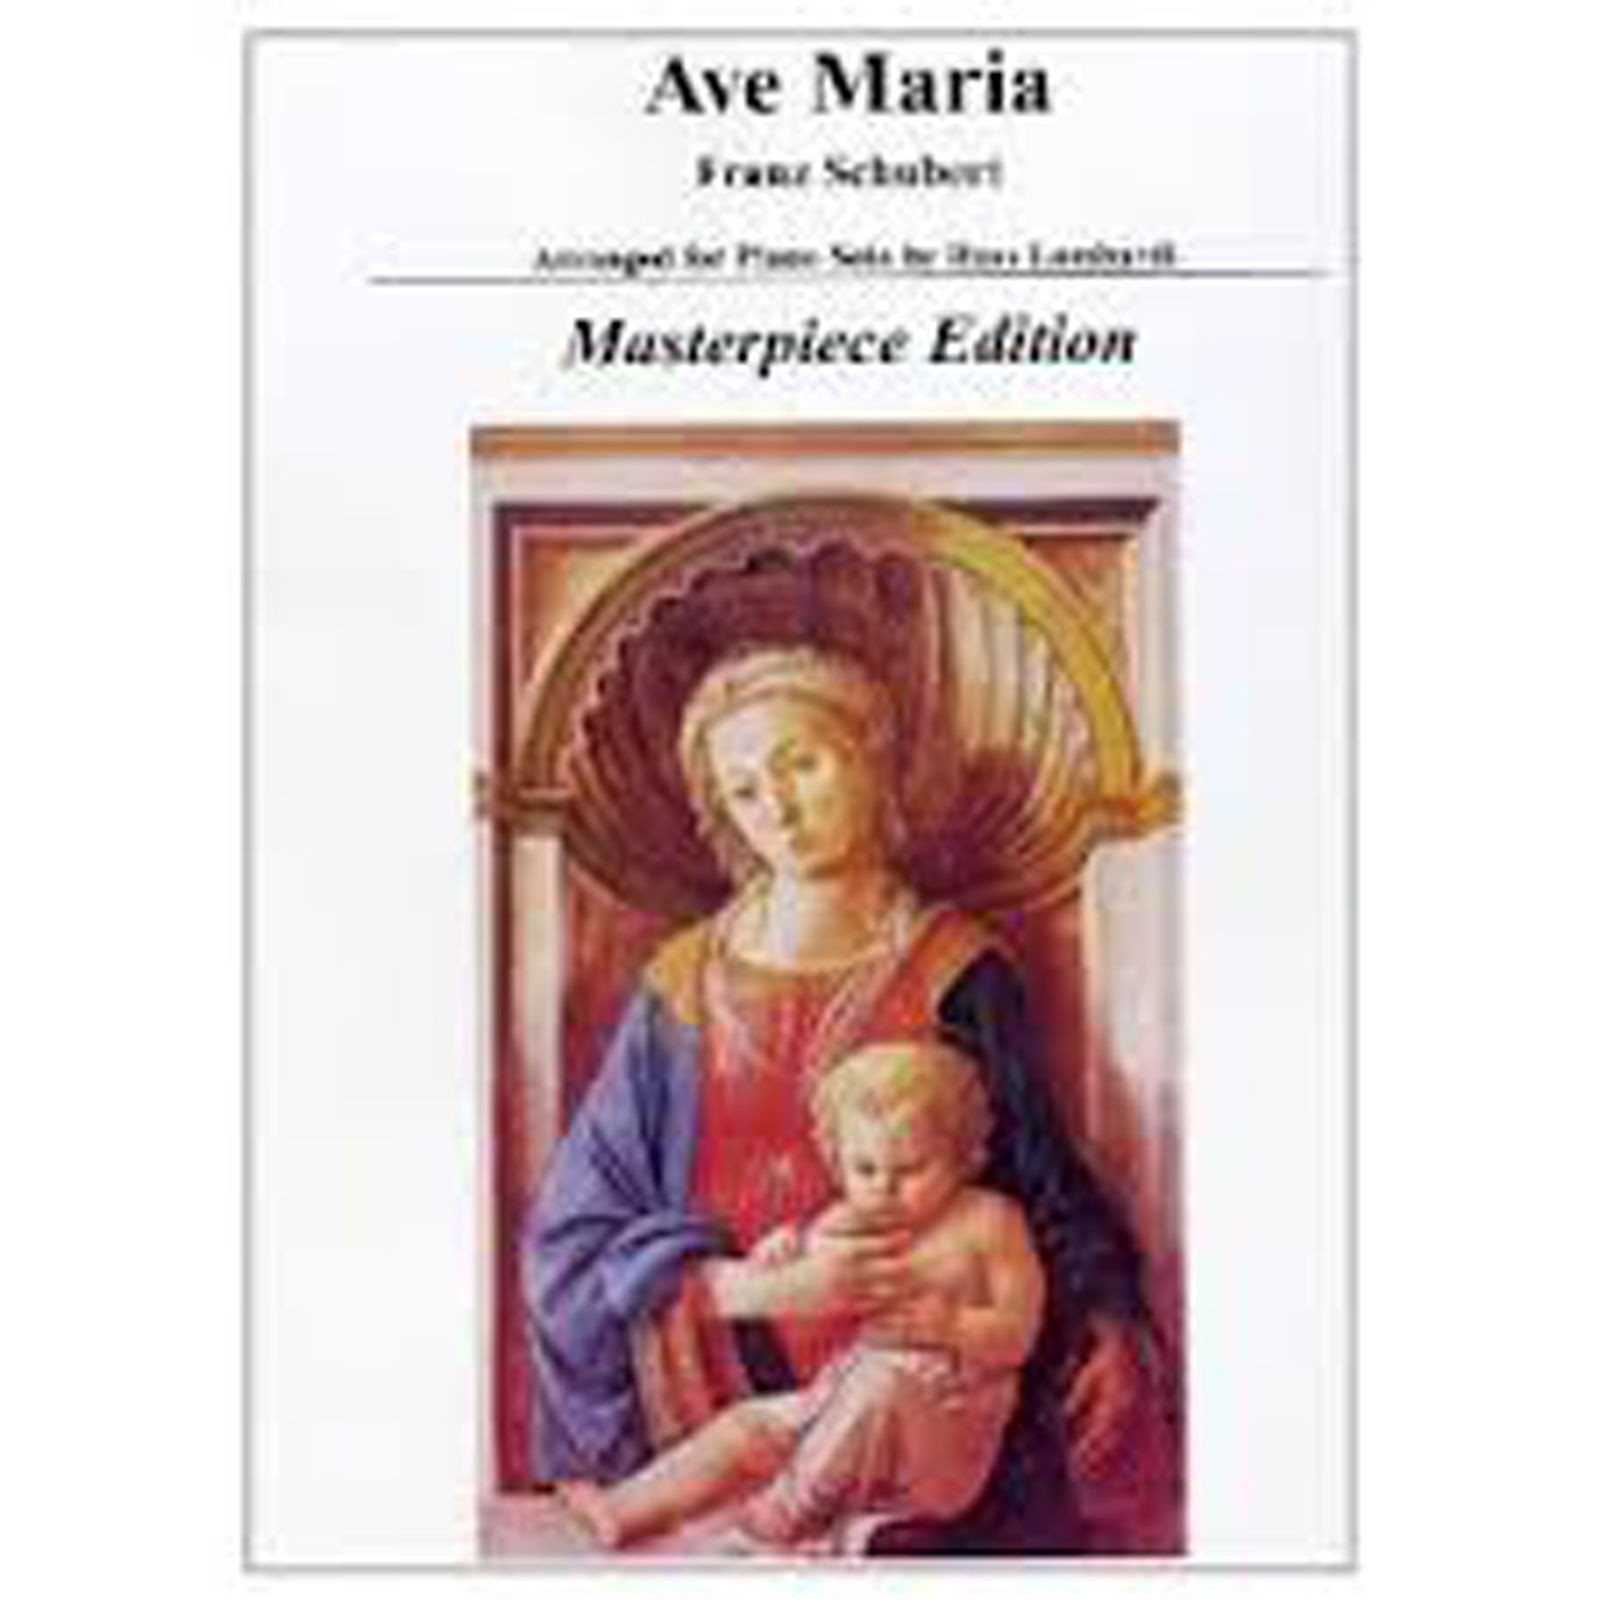 Ave Maria Solo Piano Sheet Music Masterpiece Edition Schubert Arr Lombardi B40